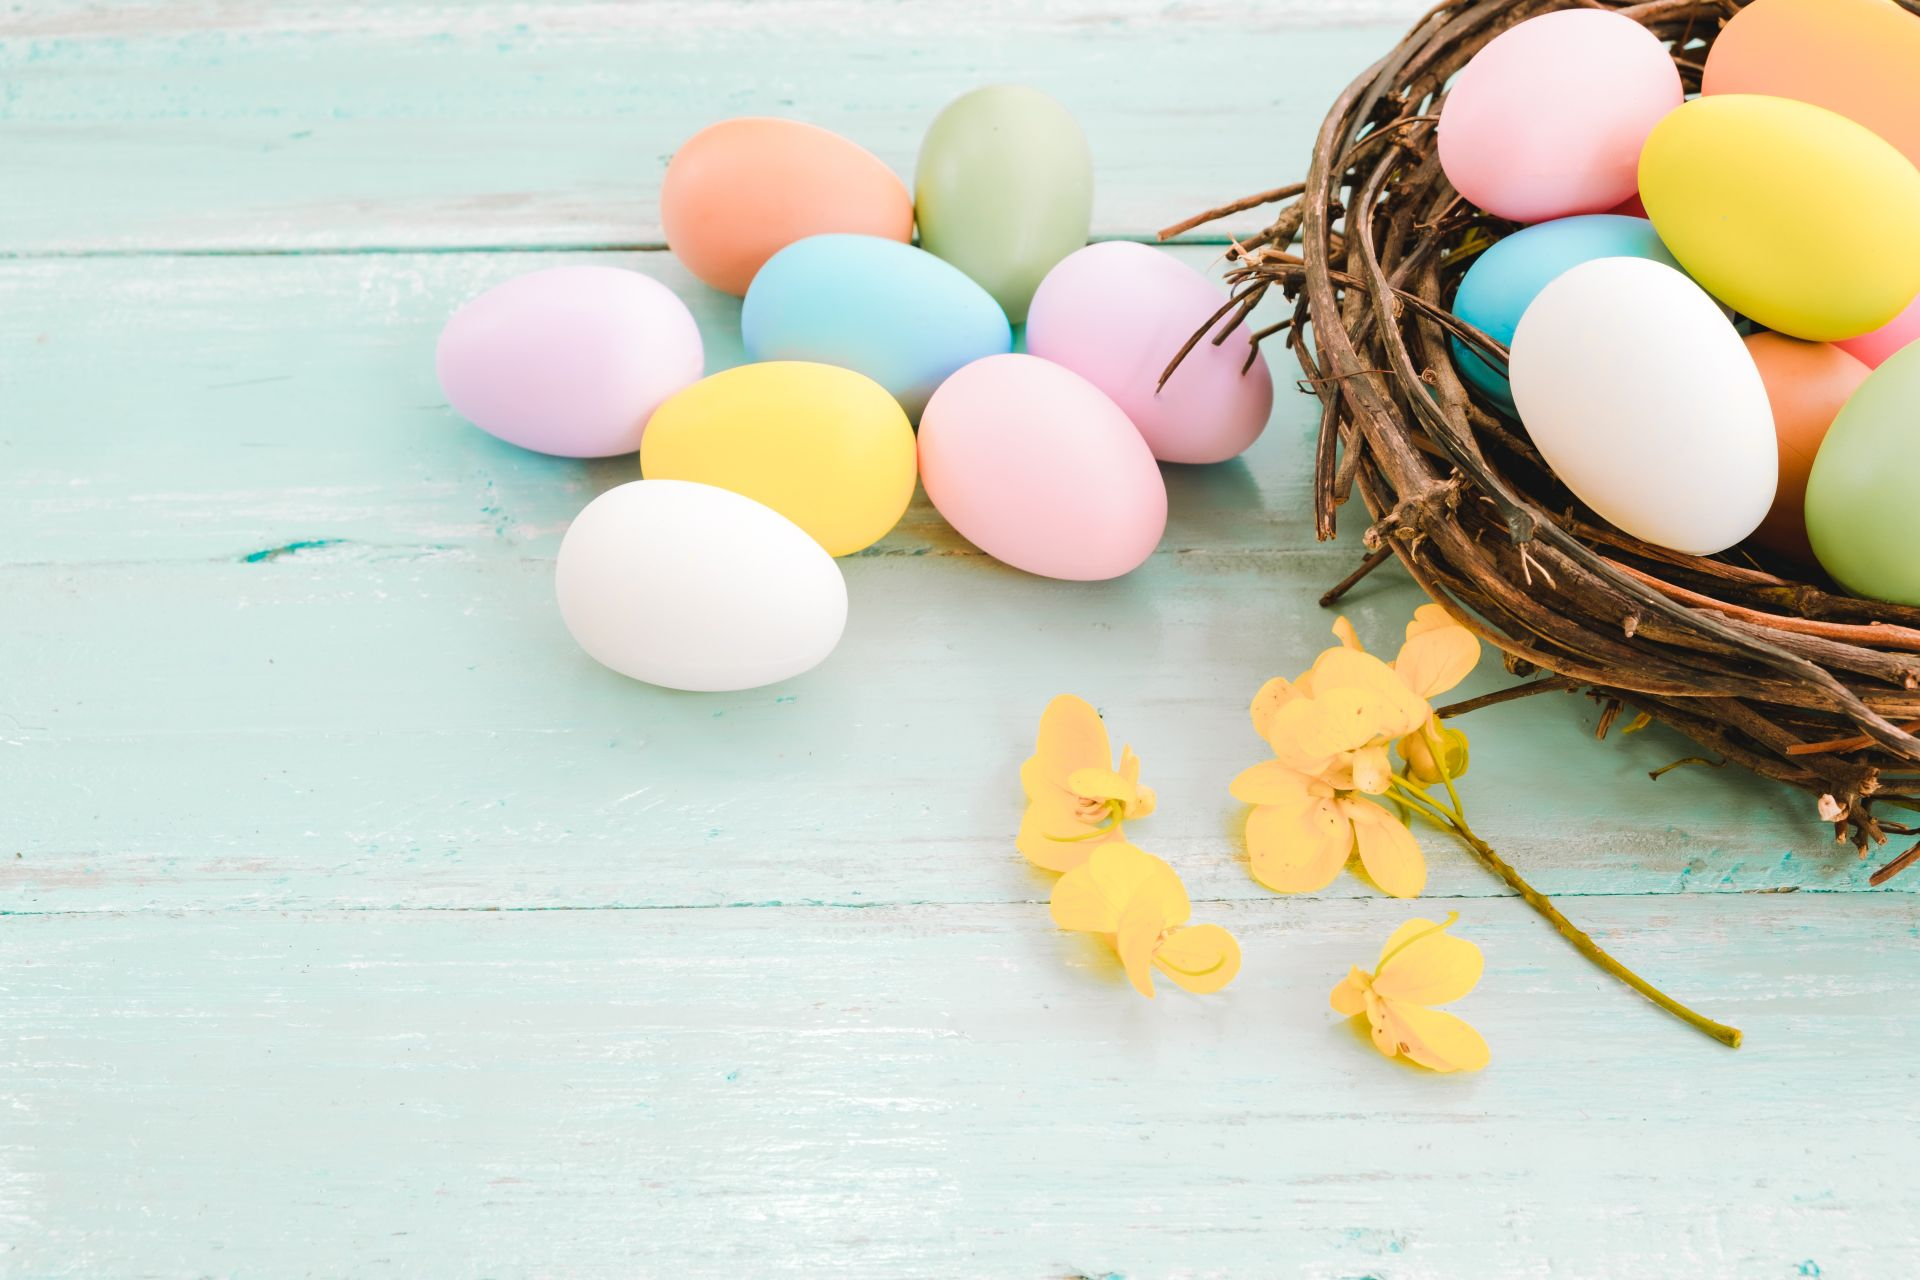 easter egg clean clear wallpaper background